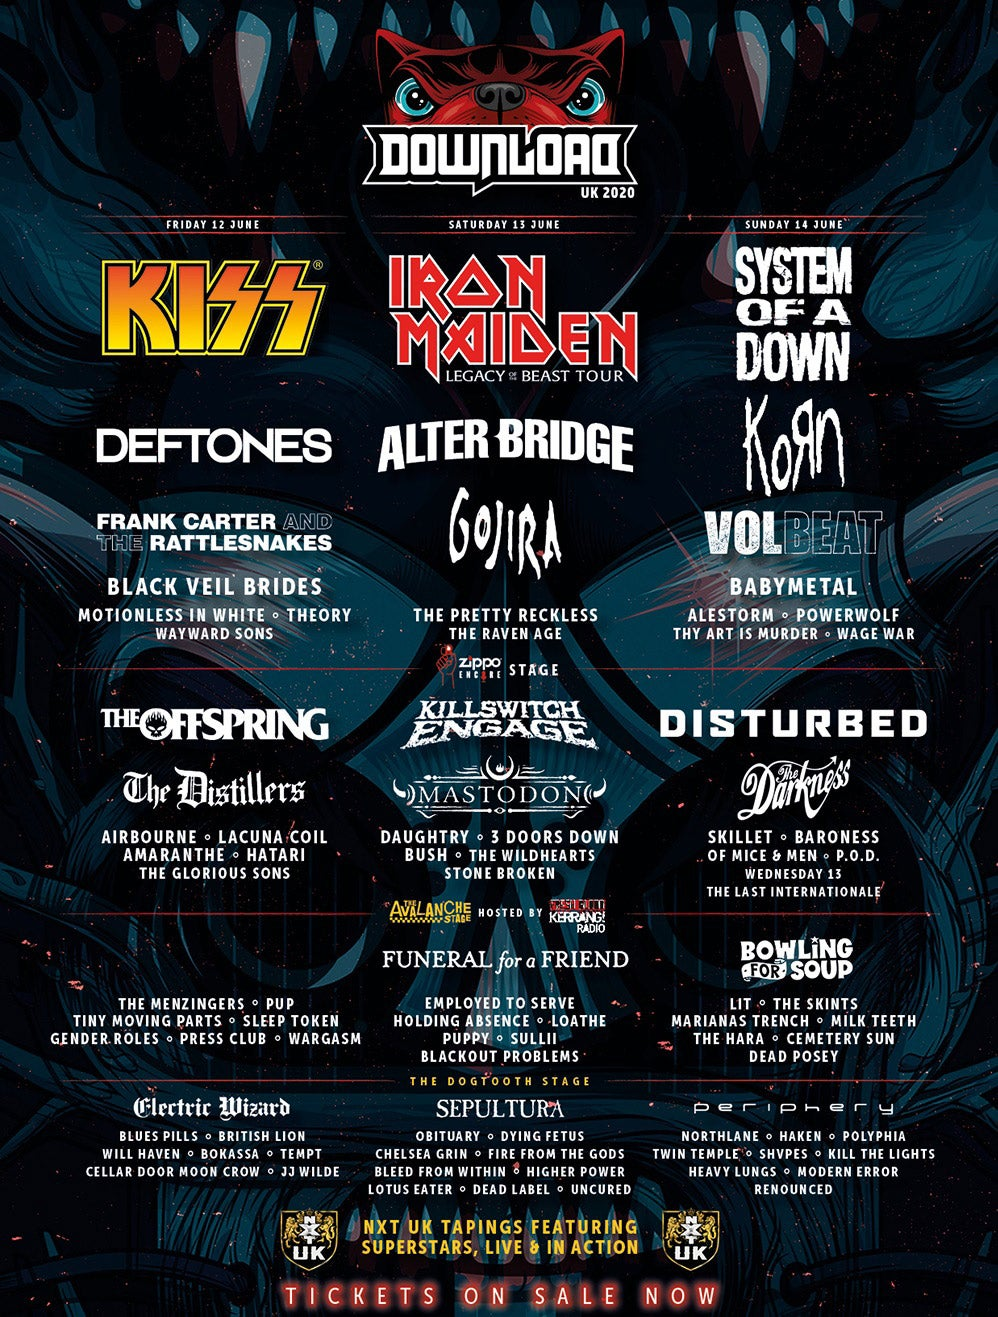 Download Line-up 2020